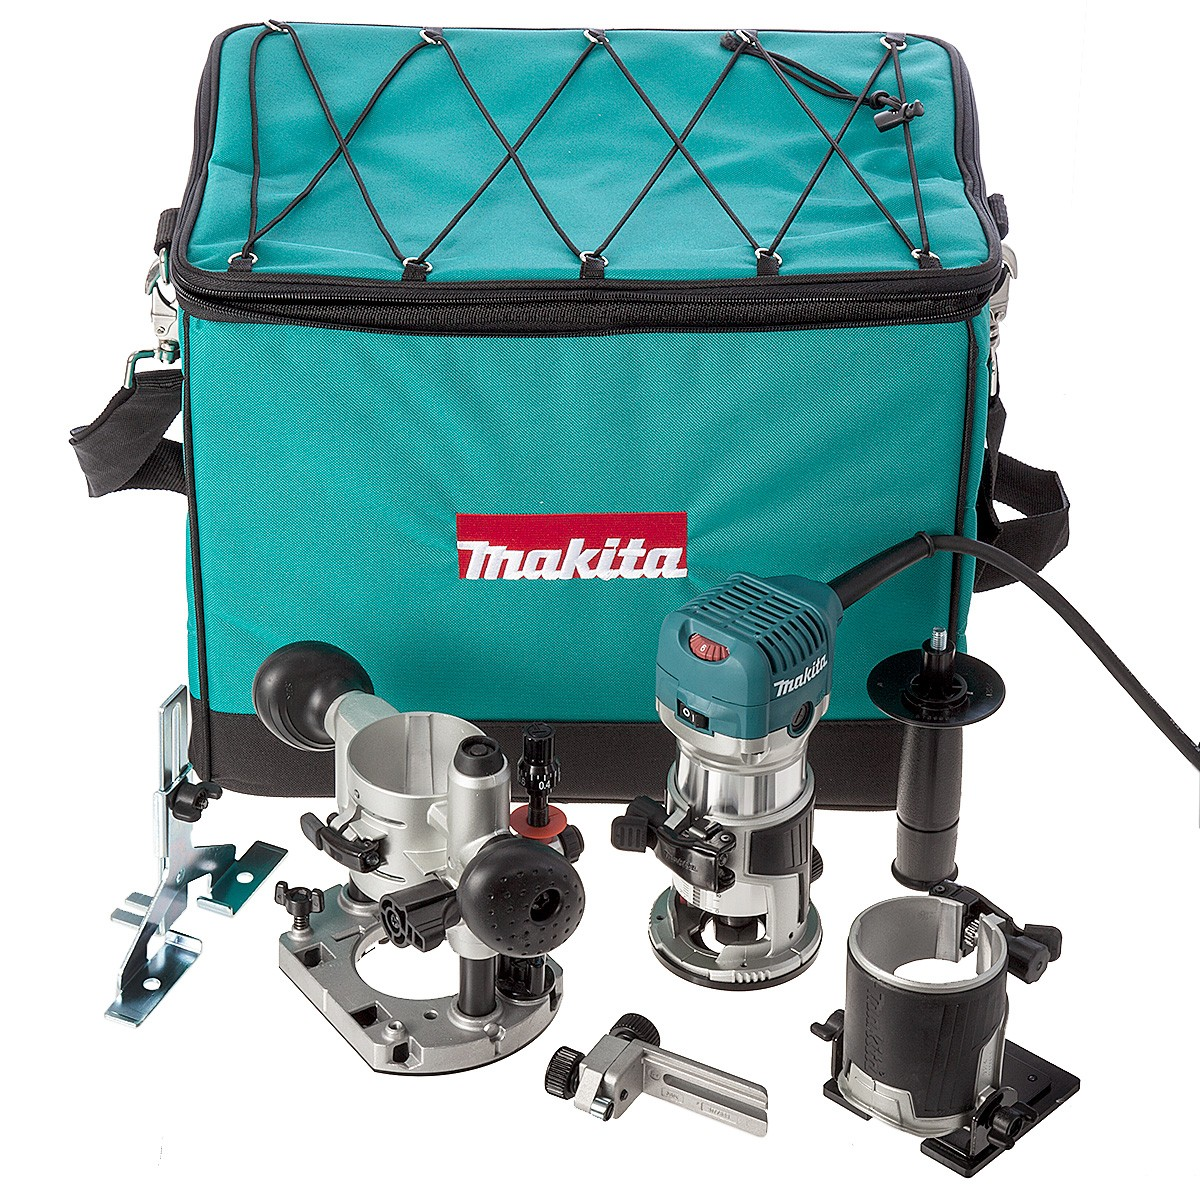 makita rt0700cx2 1 4 router trimmer with trimmer tilt and plunge bases powertool world. Black Bedroom Furniture Sets. Home Design Ideas